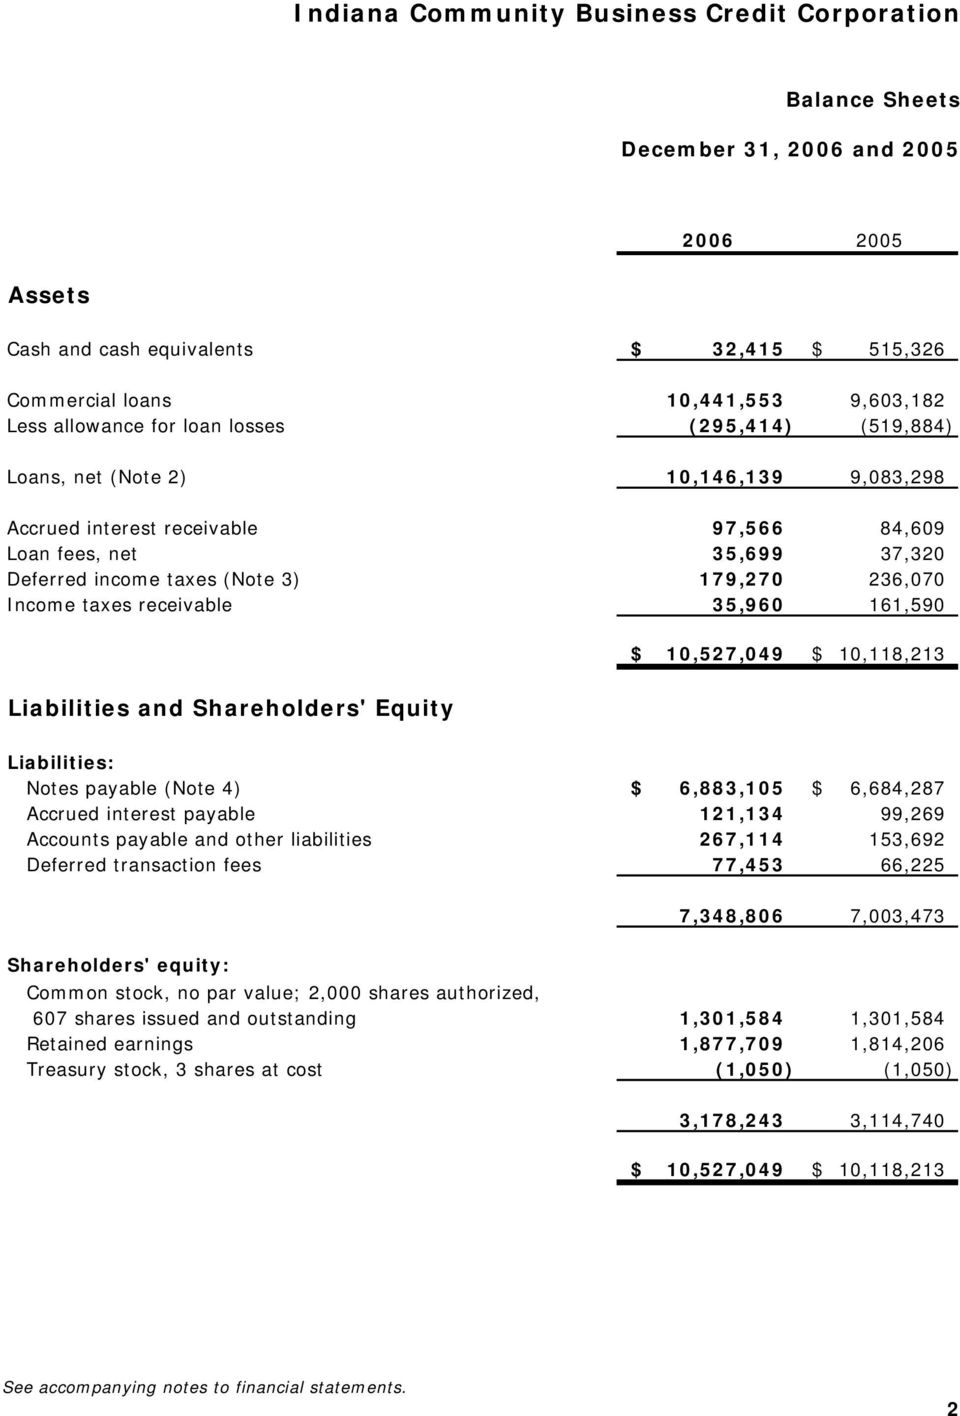 Shareholders' Equity $ 10,527,049 $ 10,118,213 Liabilities: Notes payable (Note 4) $ 6,883,105 $ 6,684,287 Accrued interest payable 121,134 99,269 Accounts payable and other liabilities 267,114